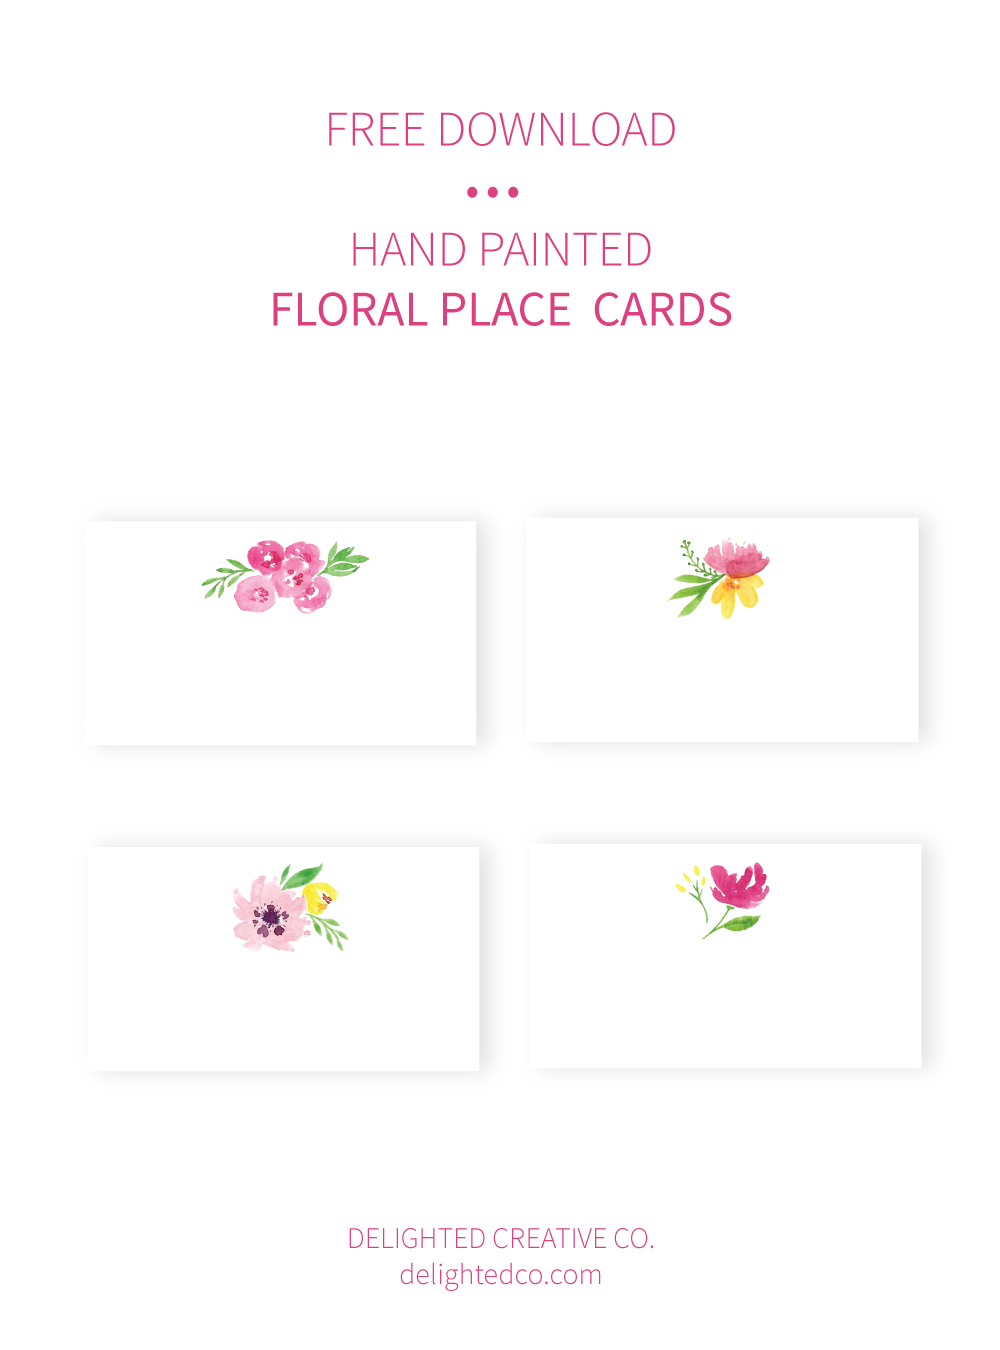 Free Watercolor Floral Place Cards • Delighted Creative Co.